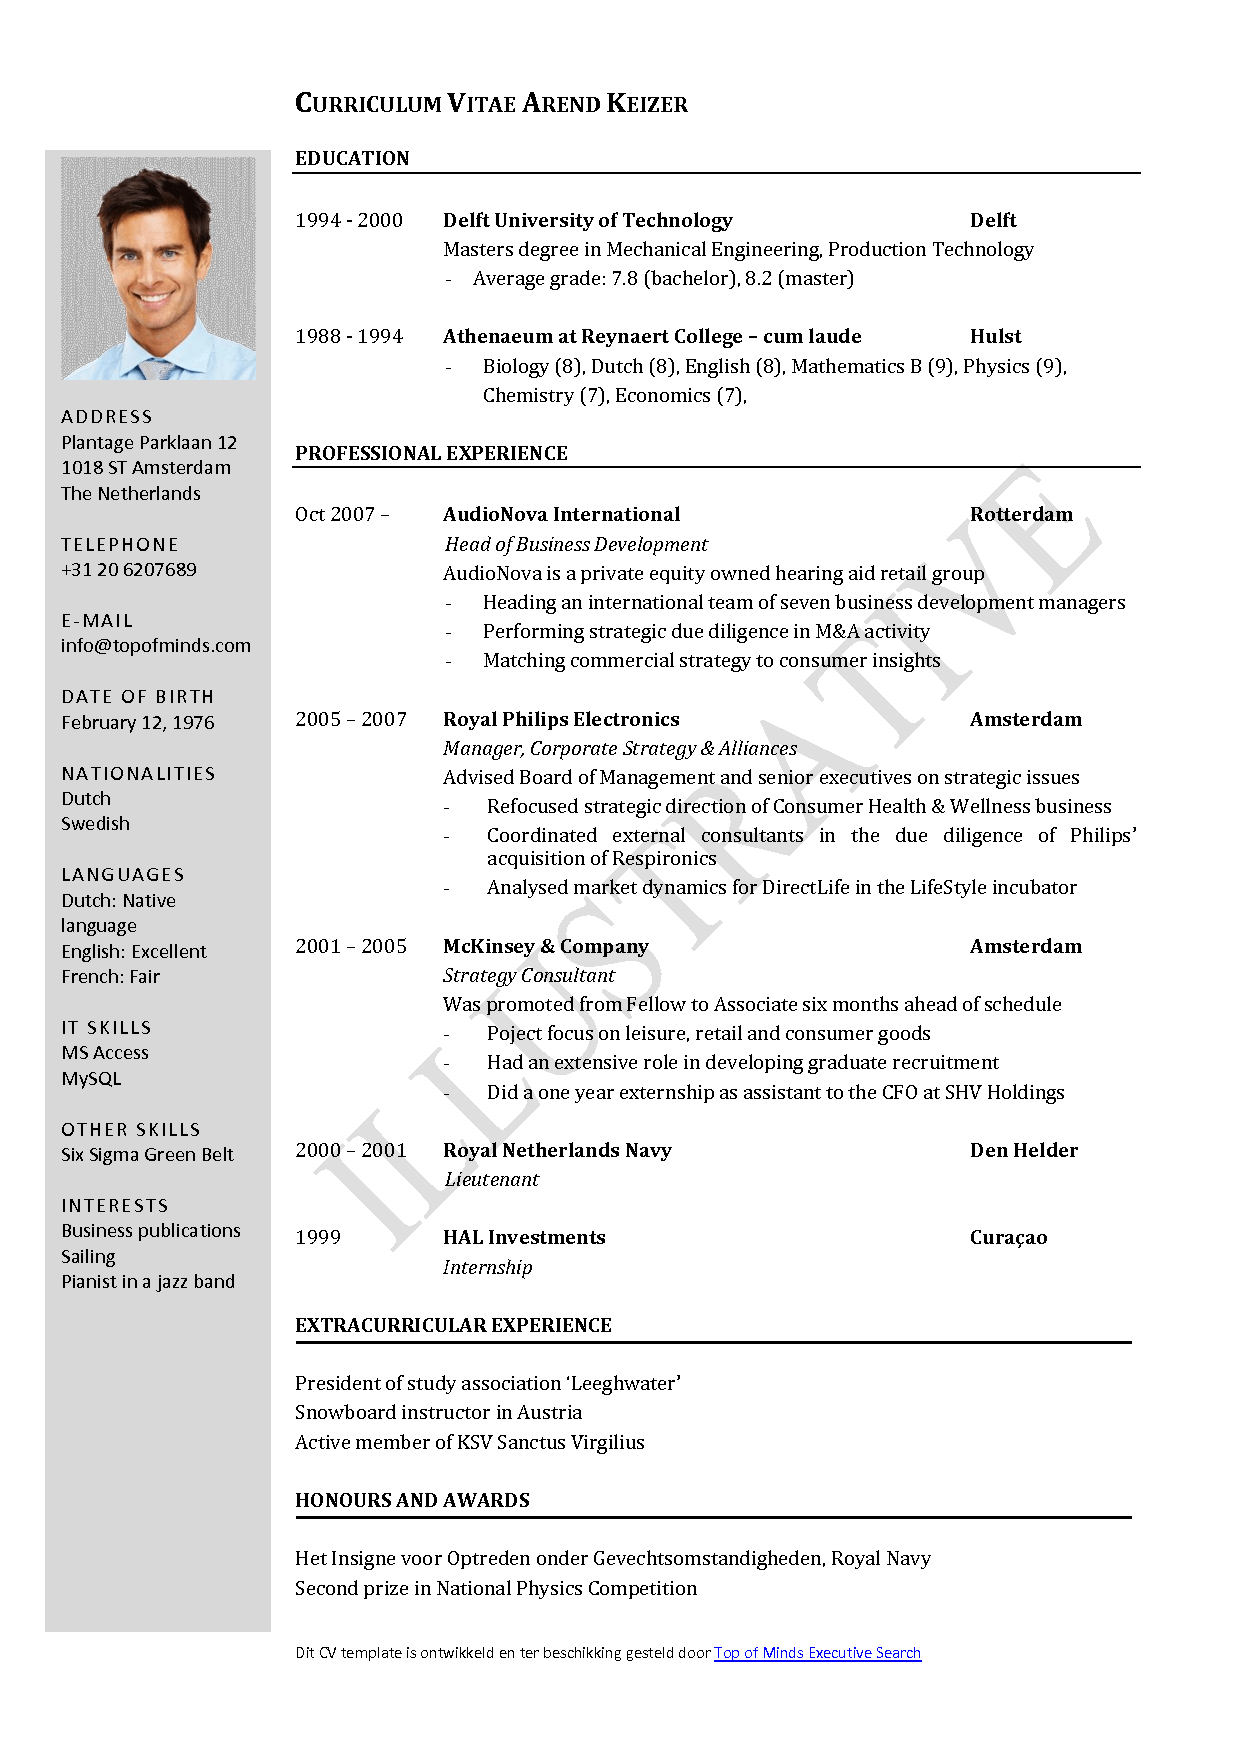 Resume Template Download Free Job Application Cv Pdf Basic Job Application Templates Download